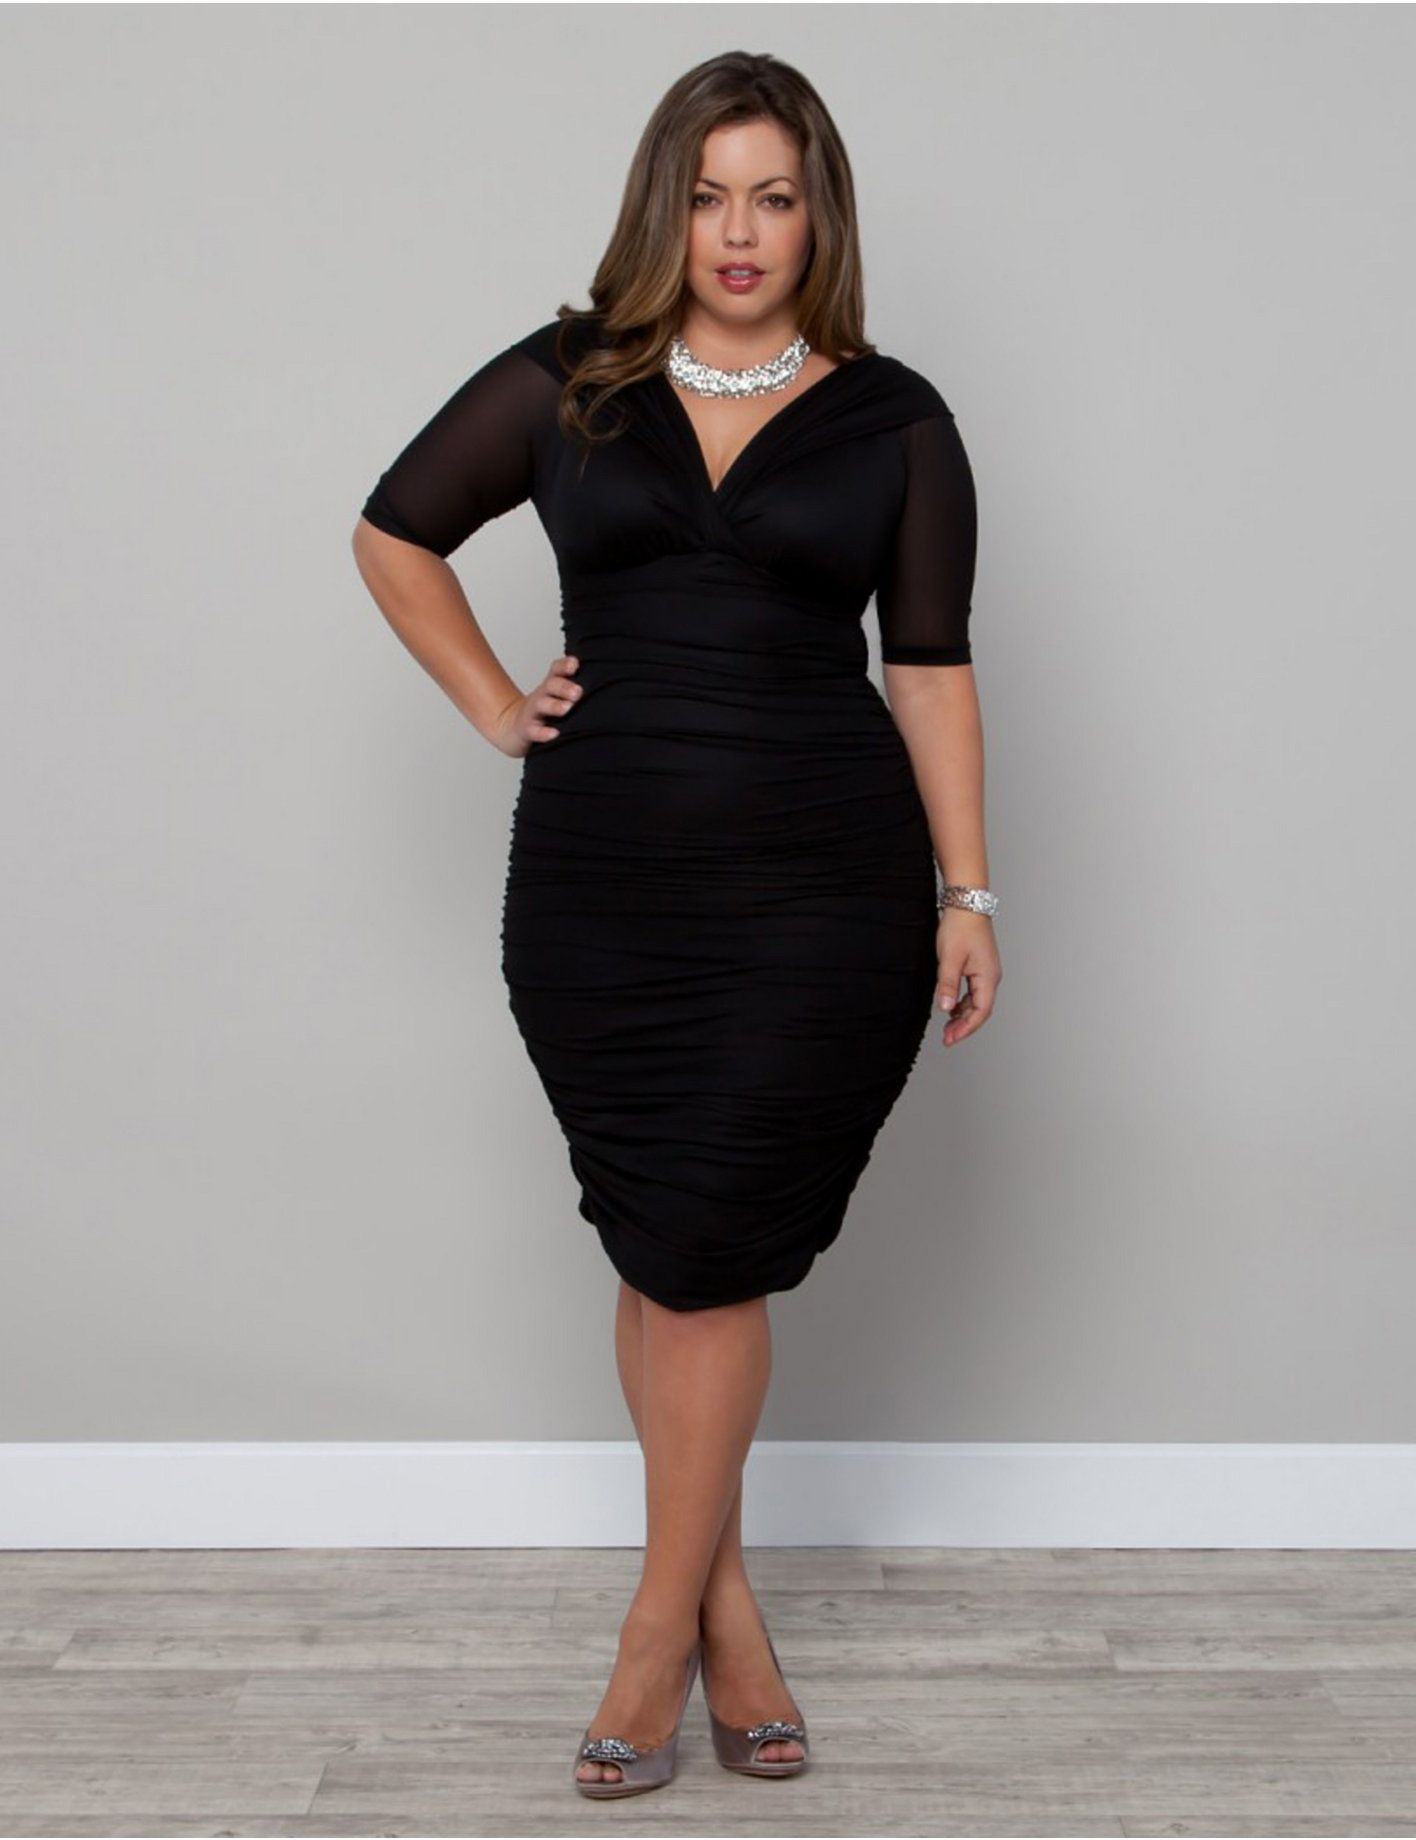 Plus Size Special Occasion Cocktail Party Dresses Lane Bryant My Style Pinterest